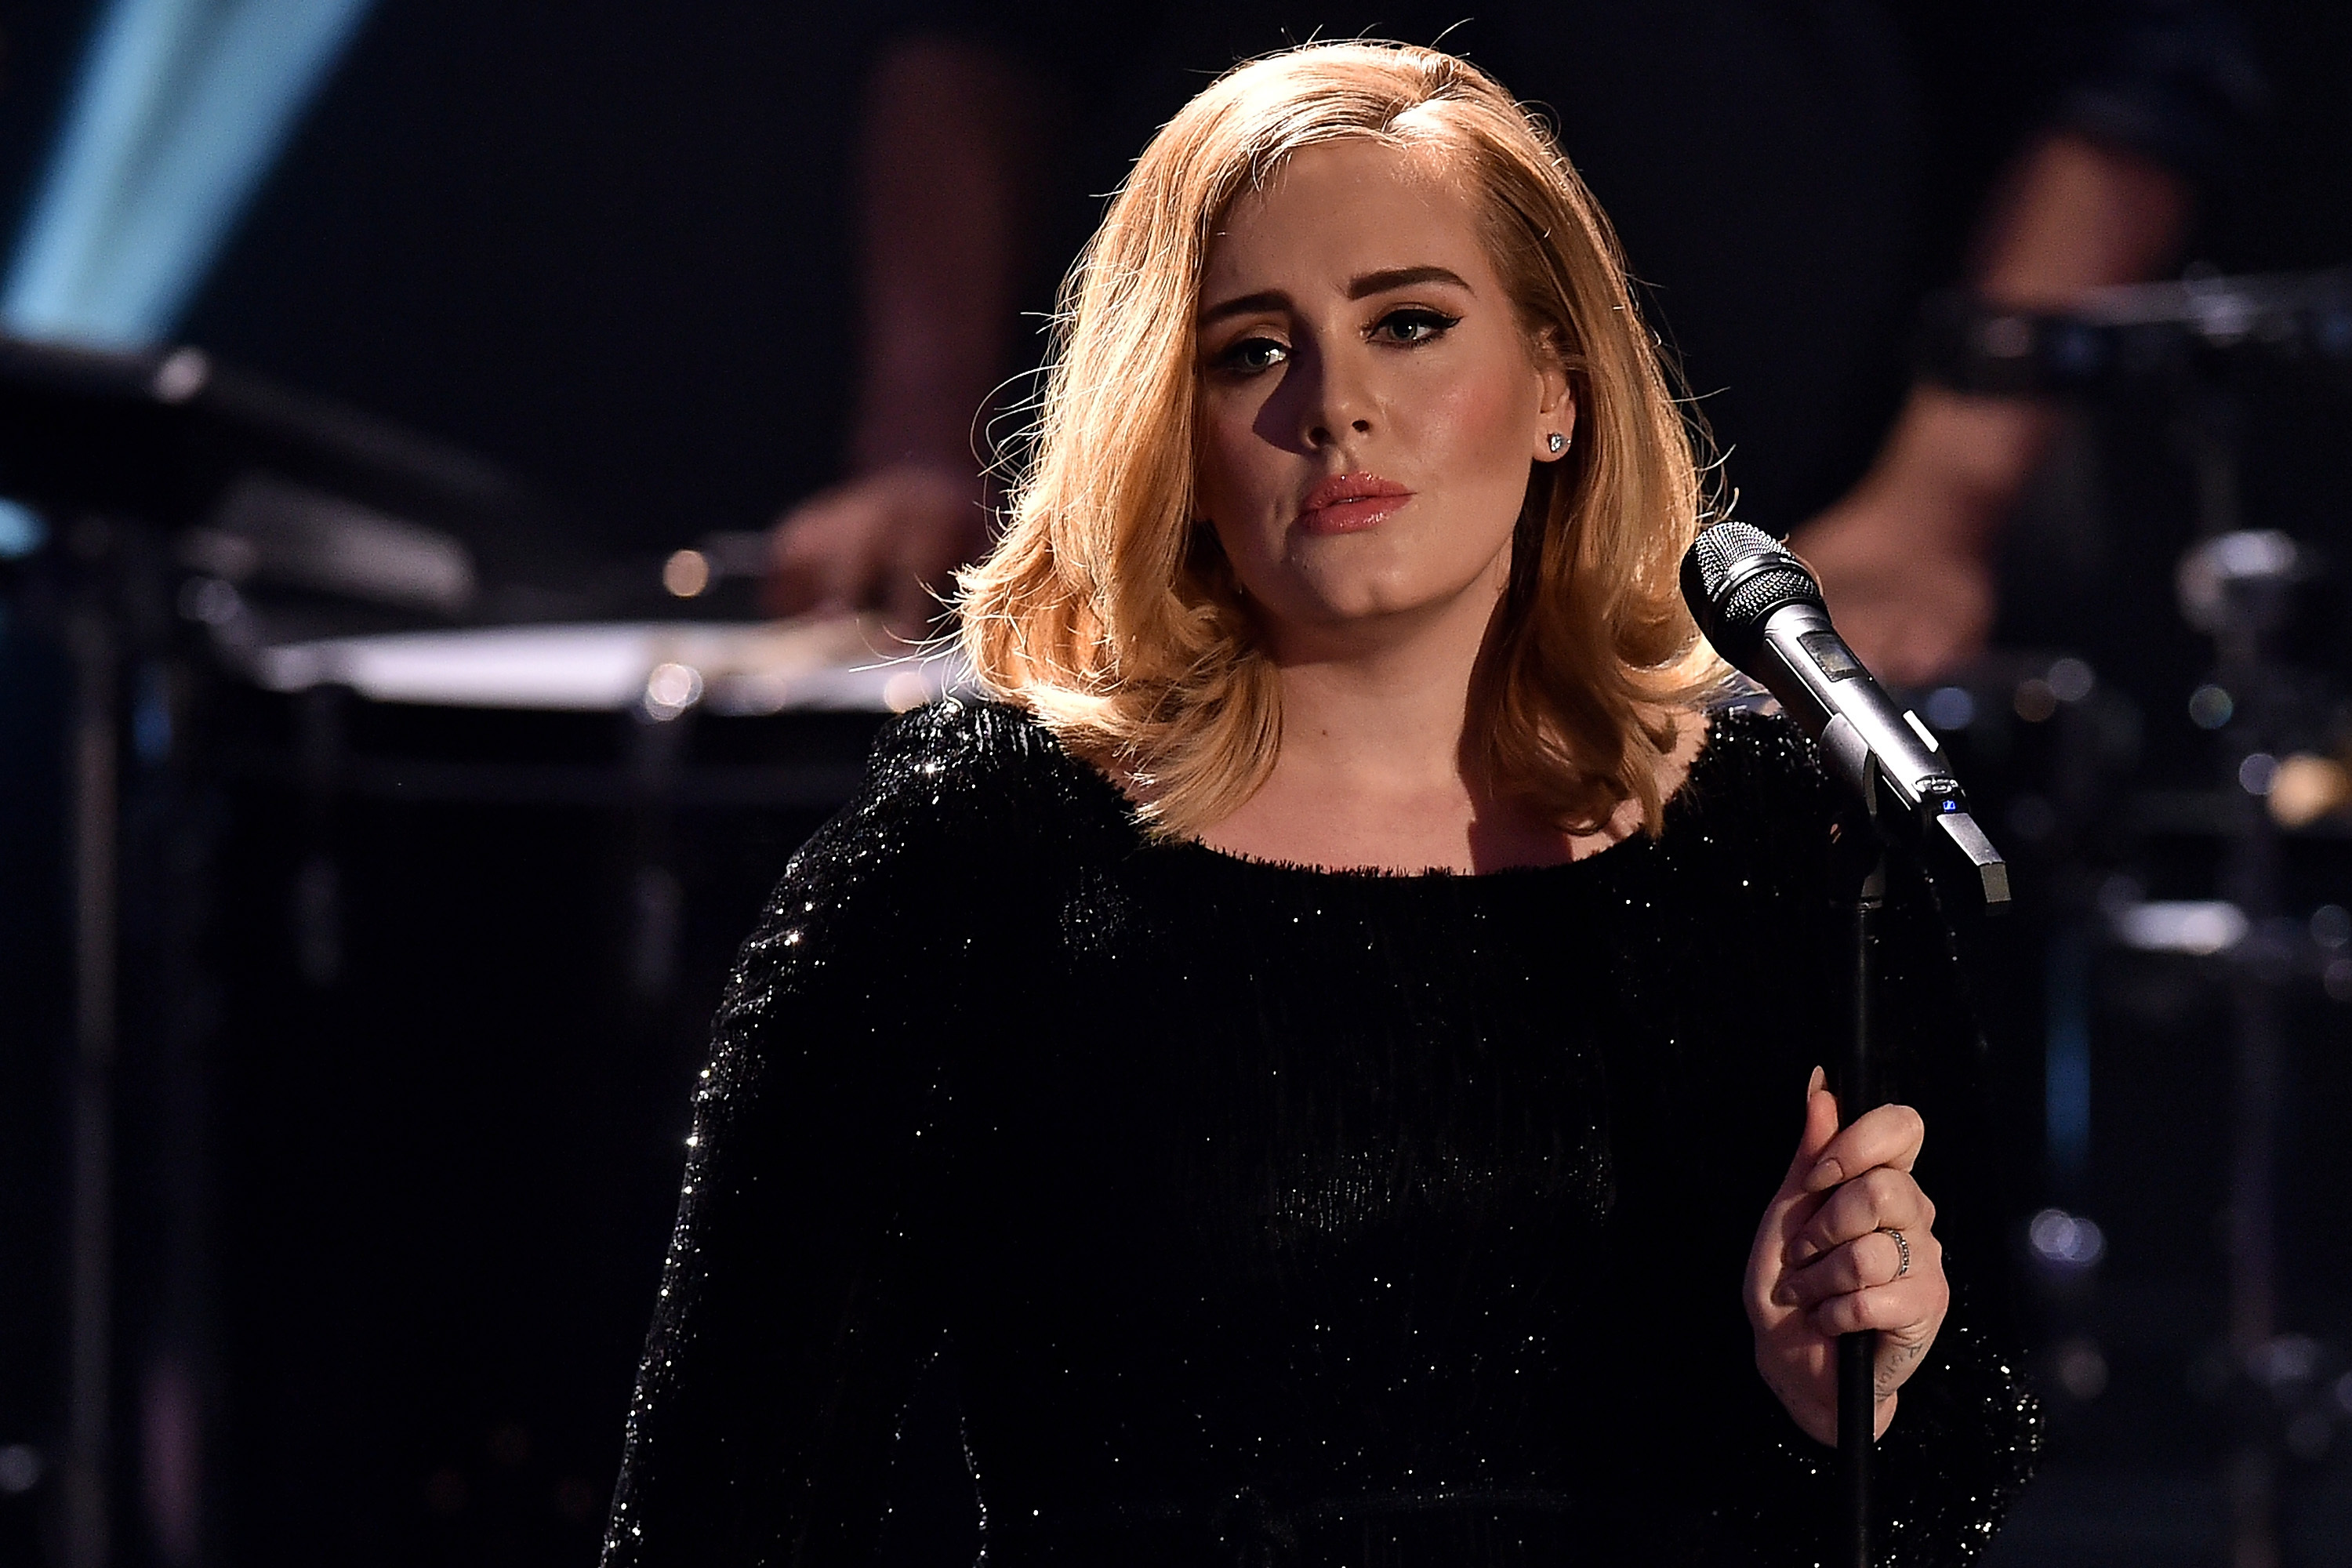 Adele Download Free Backgrounds HD